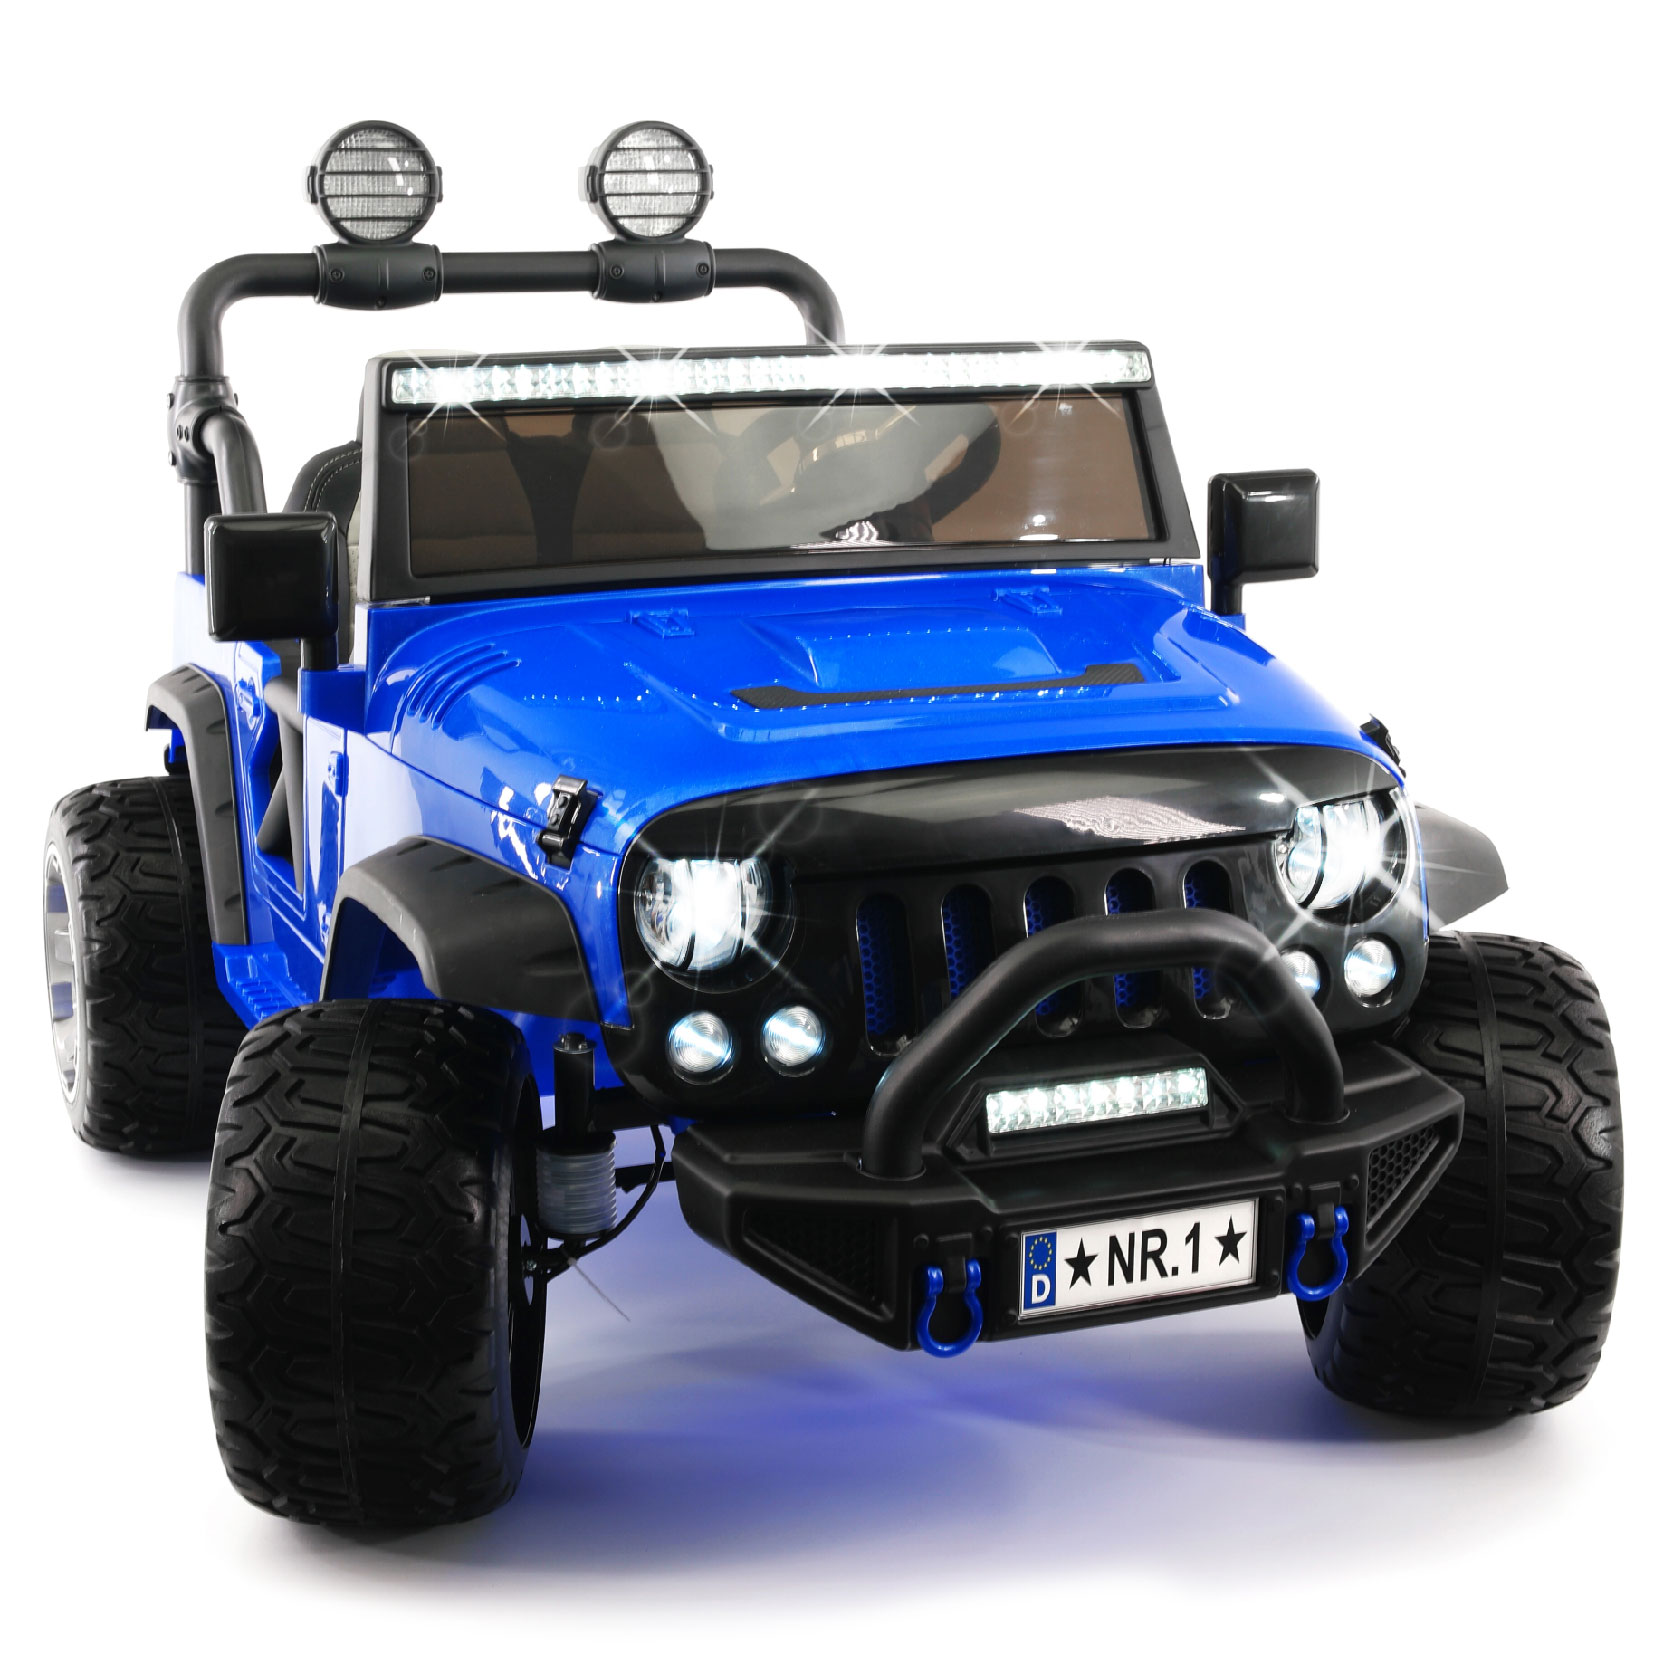 2019 Two Seater Ride On Kid's Truck 12V Power Children's Electric Car Motorized Cars for Kids w  Remote, Large... by